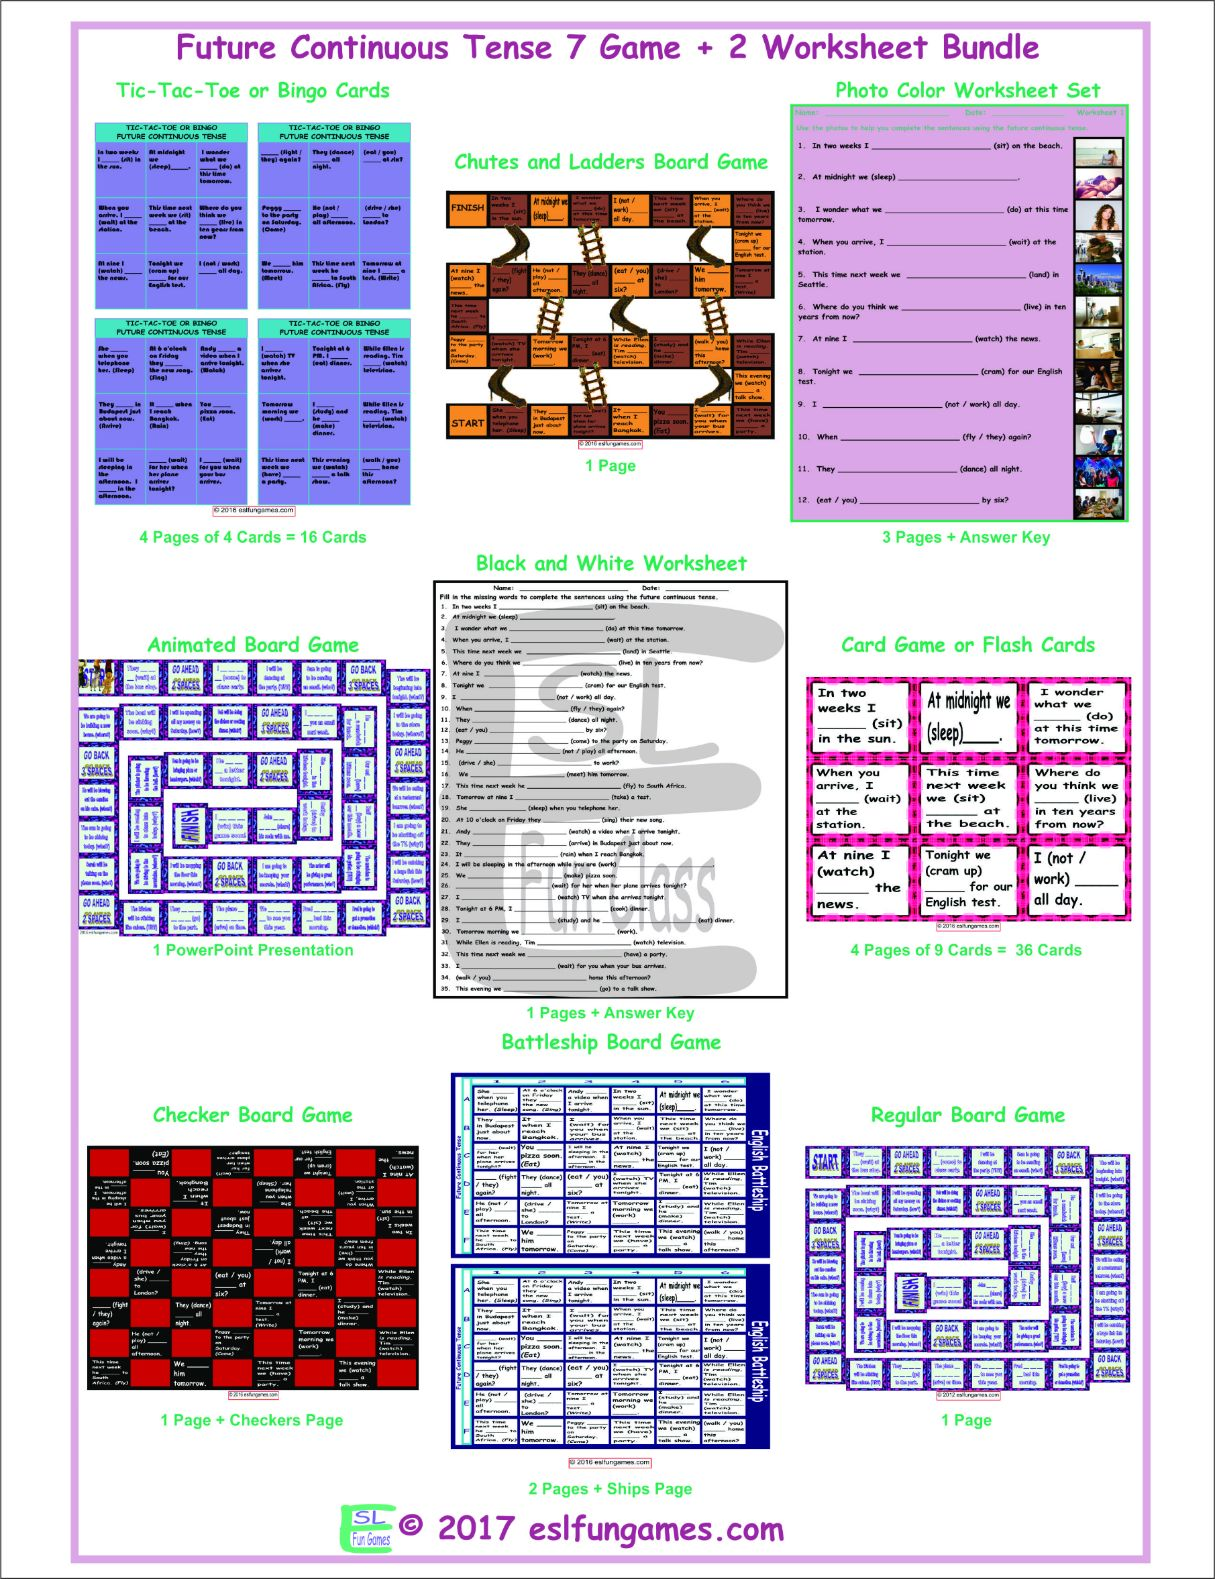 Future Continuous Tense 7 Game Plus 2 Worksheet Bundle